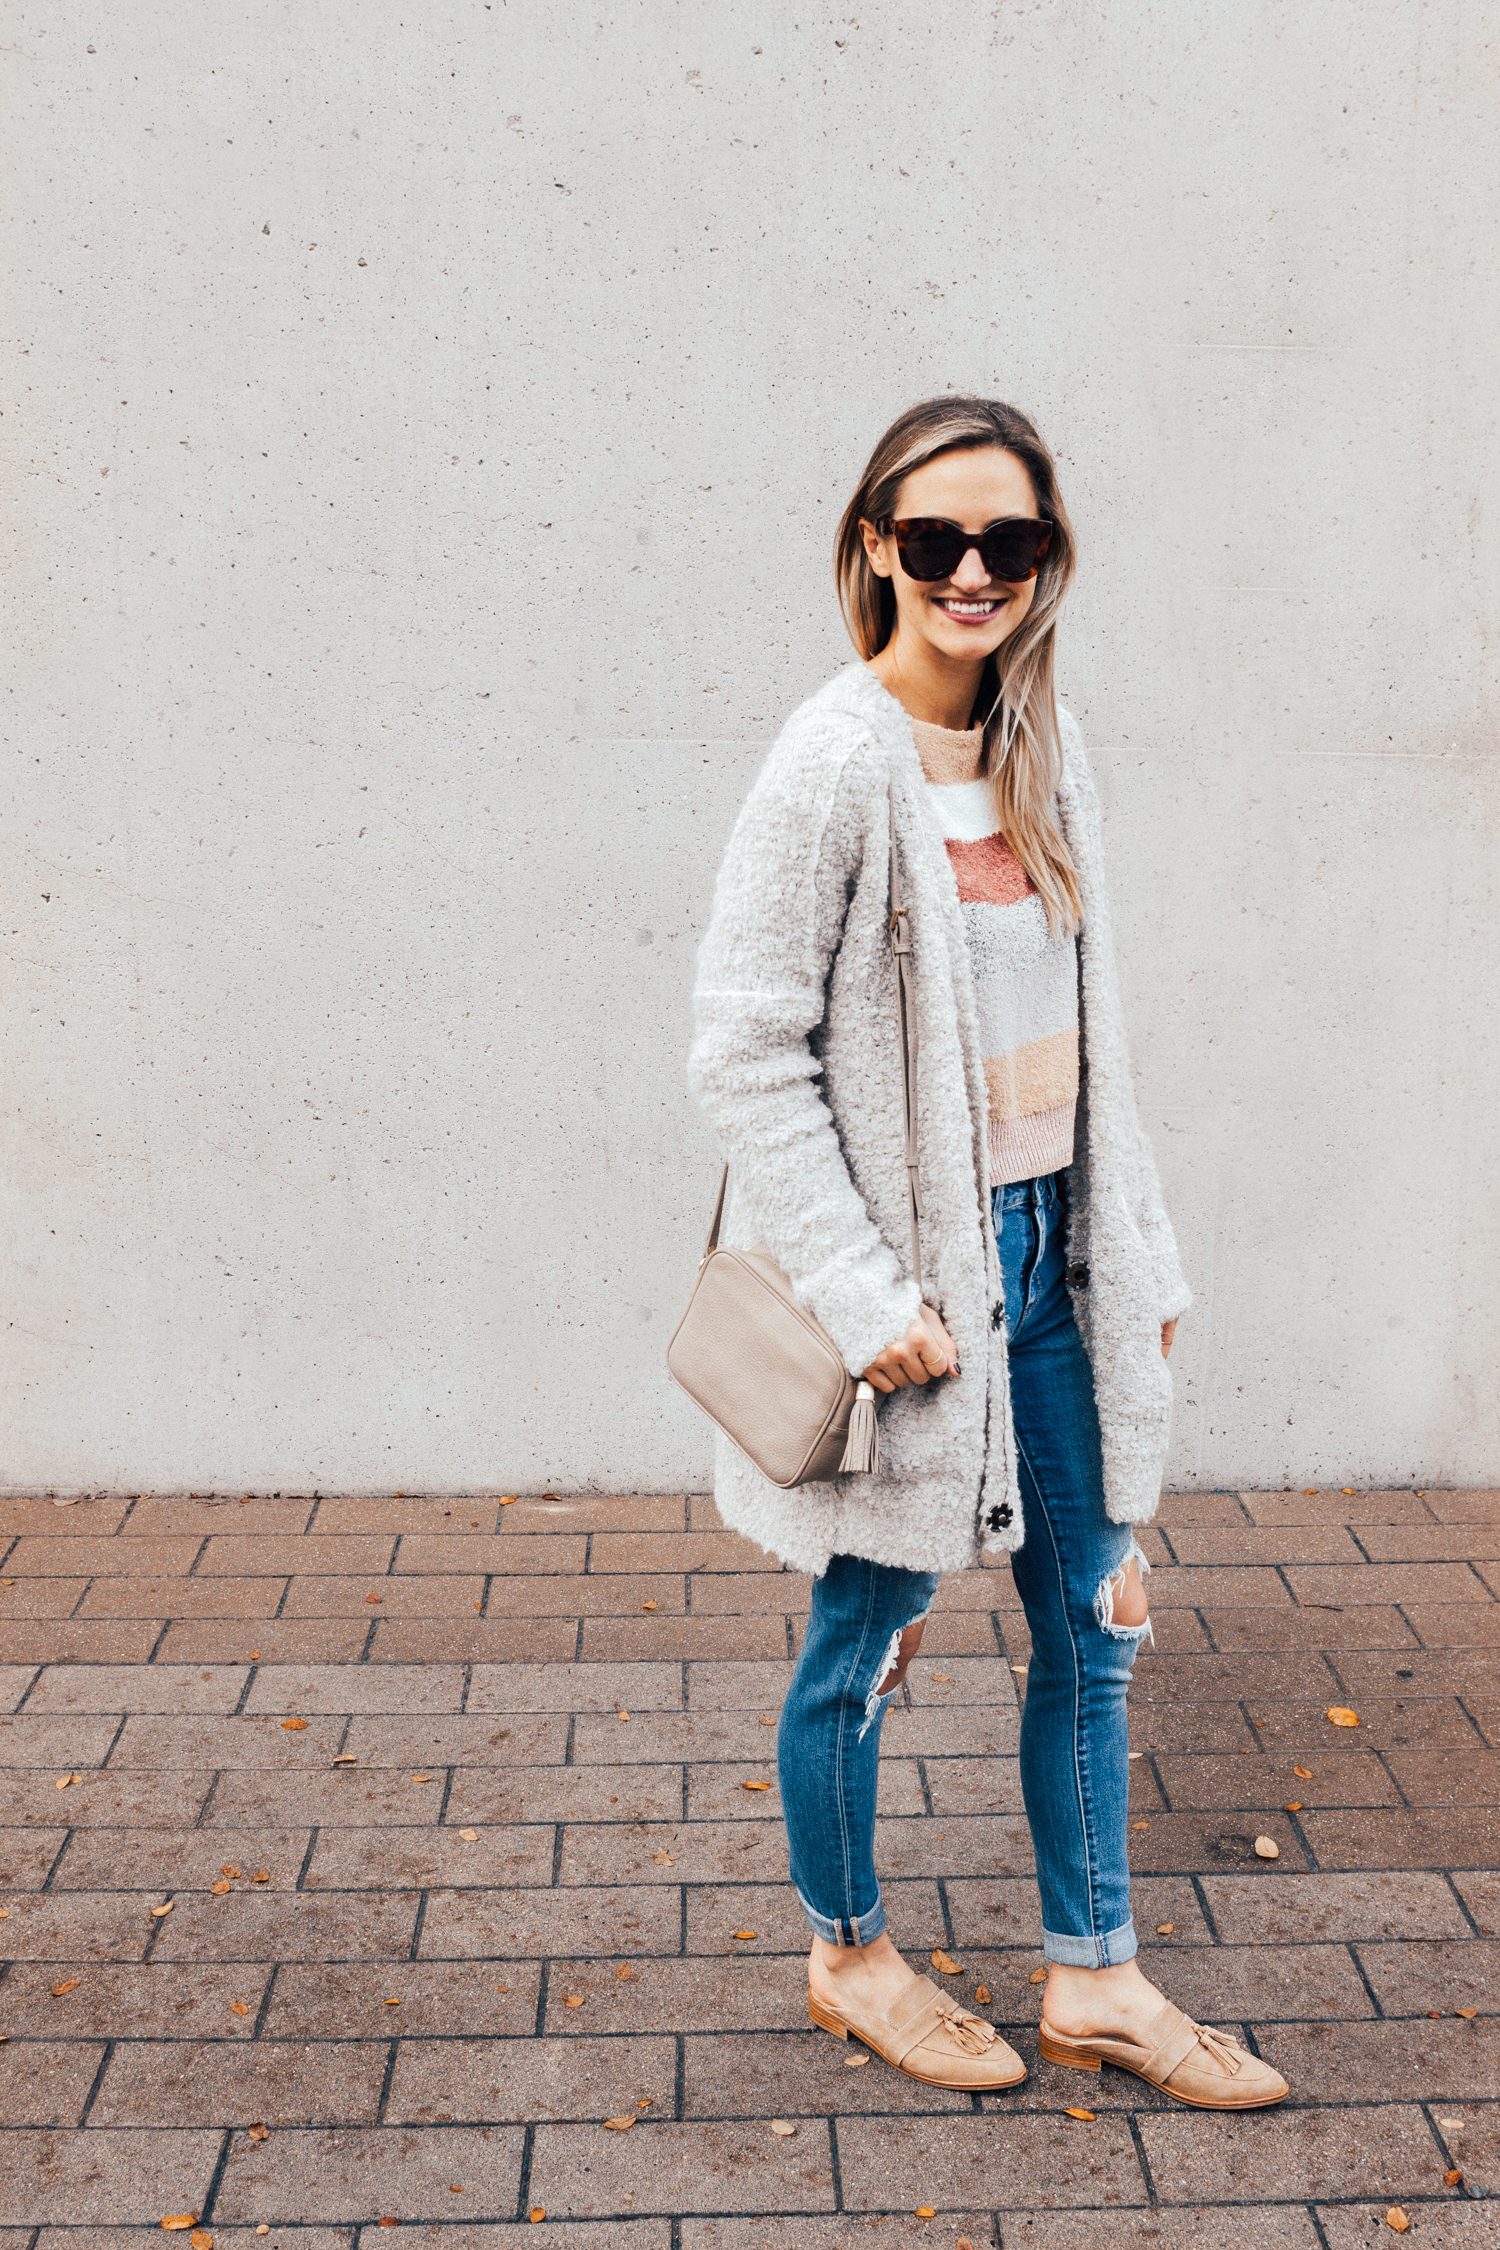 livvyland-blog-olivia-watson-free-people-blush-beige-tan-sweater-tassel-slides-cozy-layers-4-2